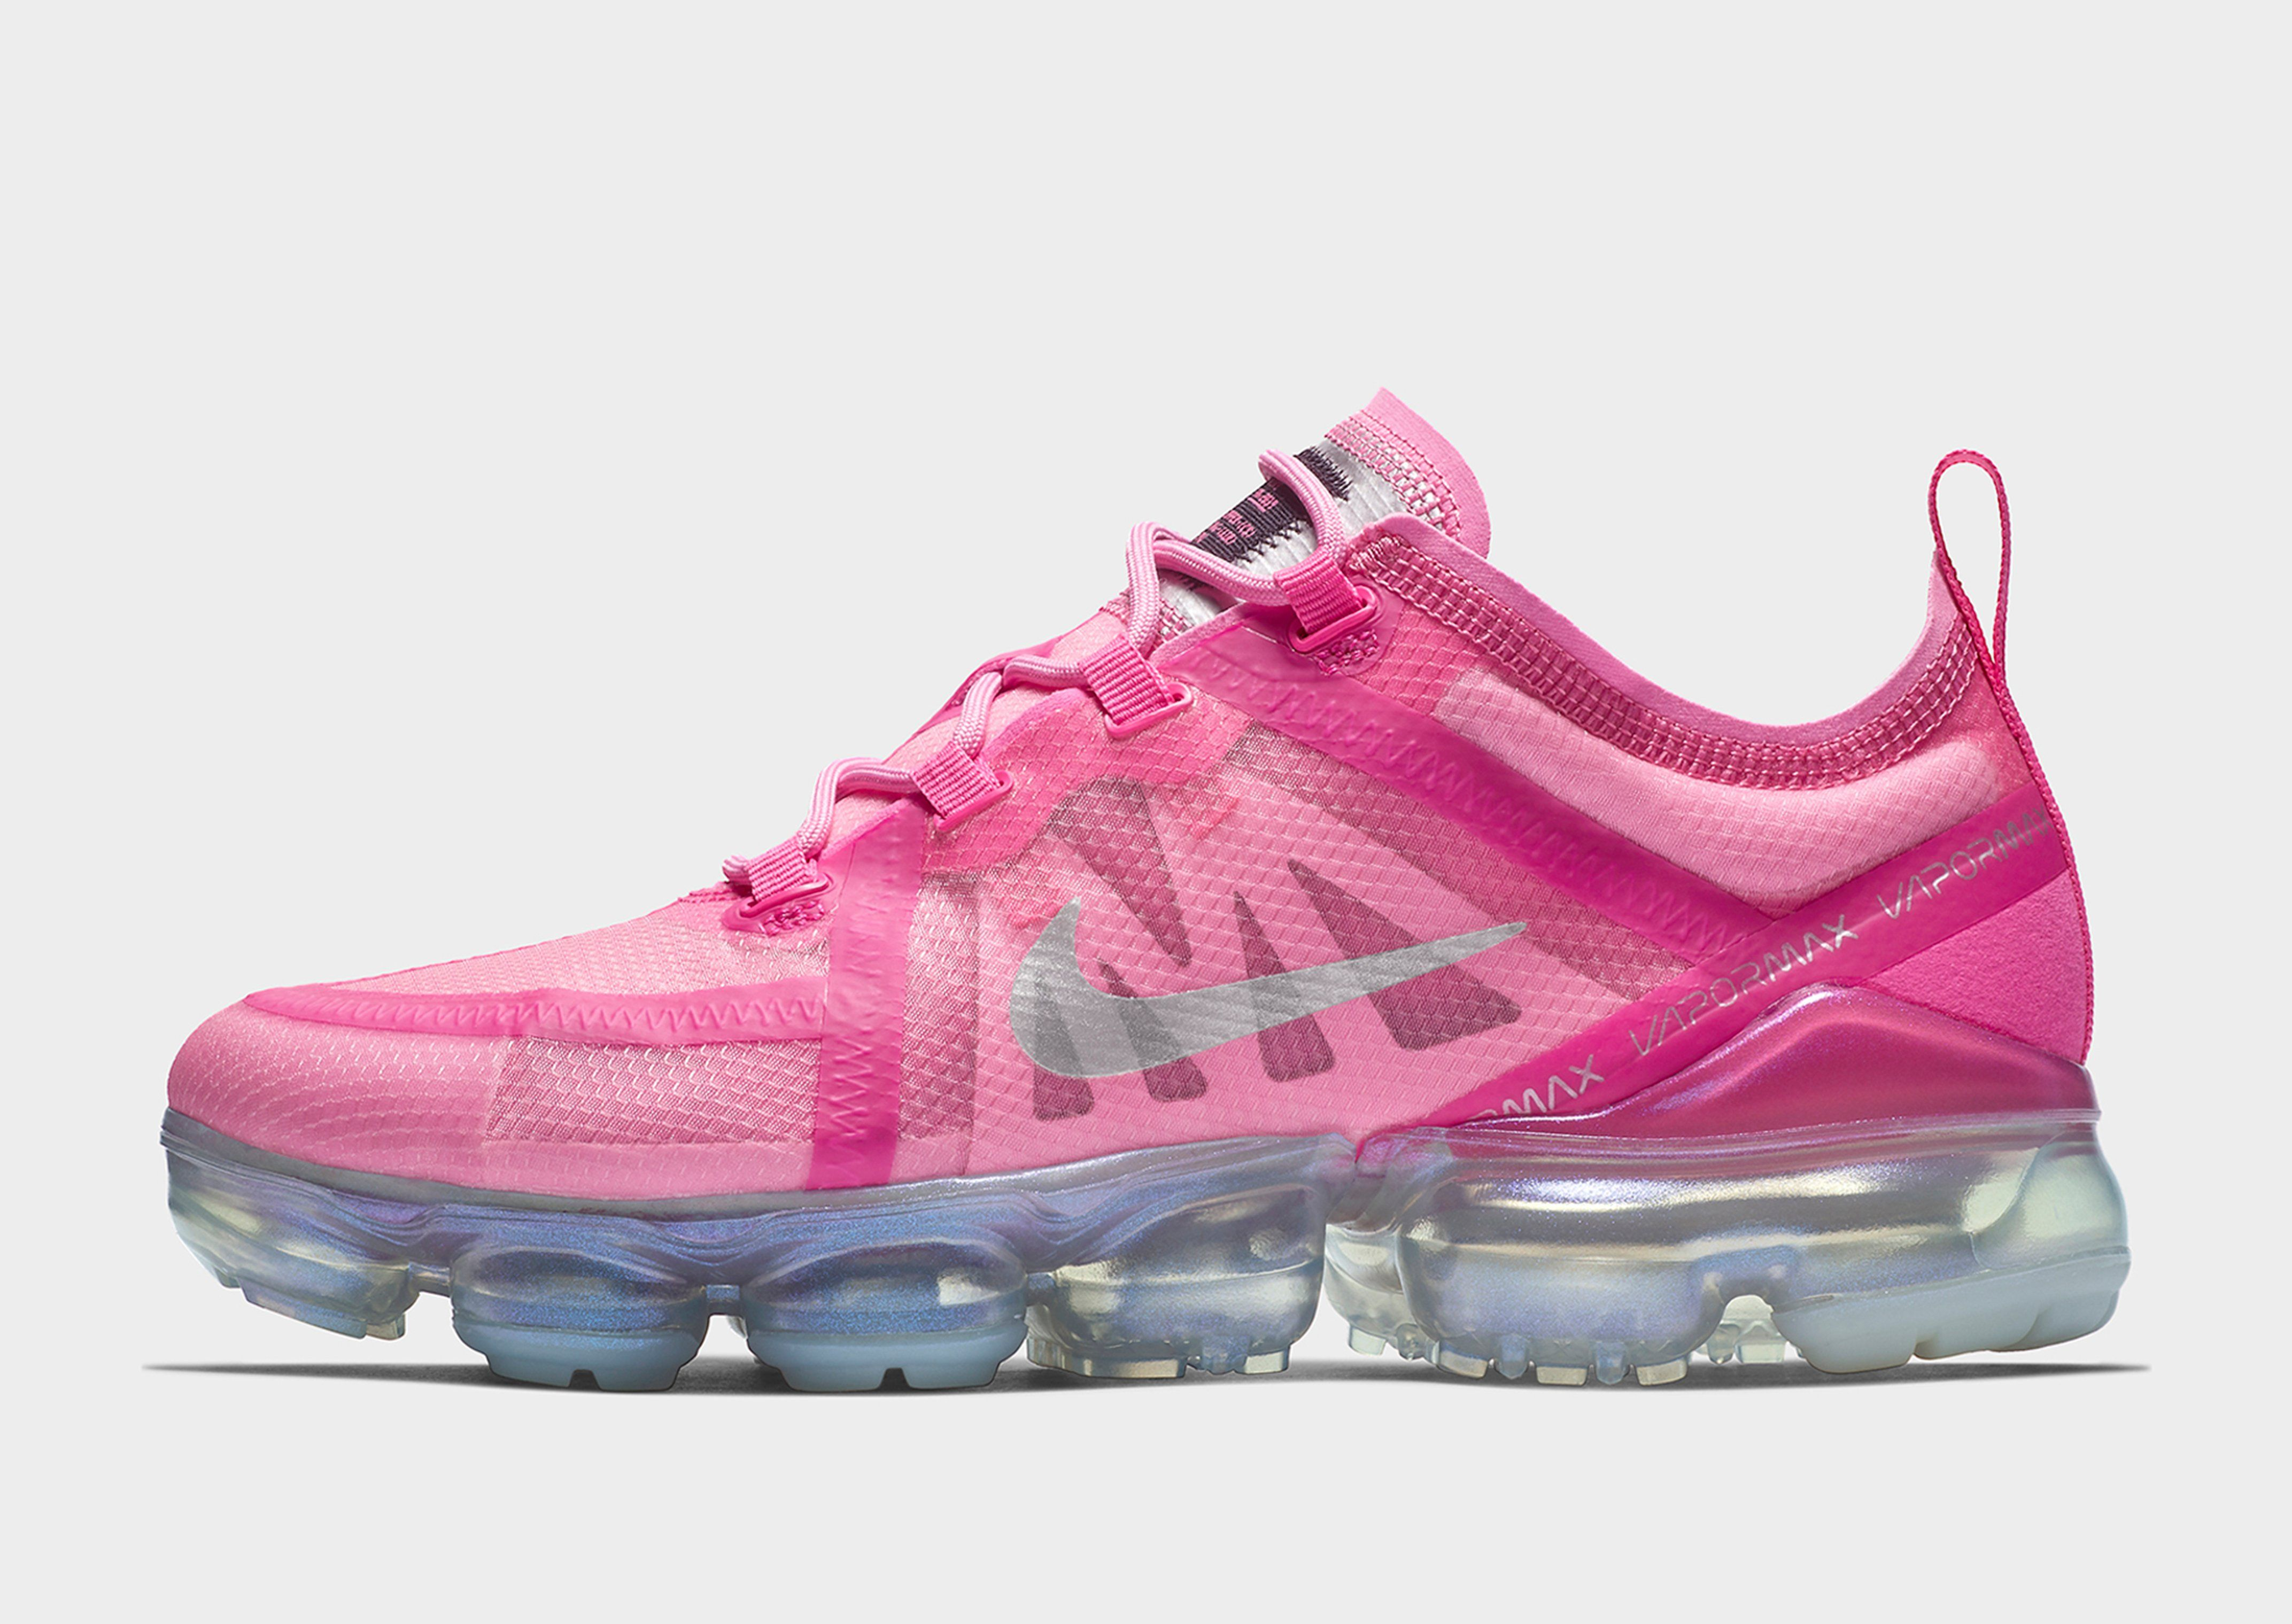 promo code e0b88 9402e Nike Nike Air VaporMax 2019 Women's Shoe | JD Sports